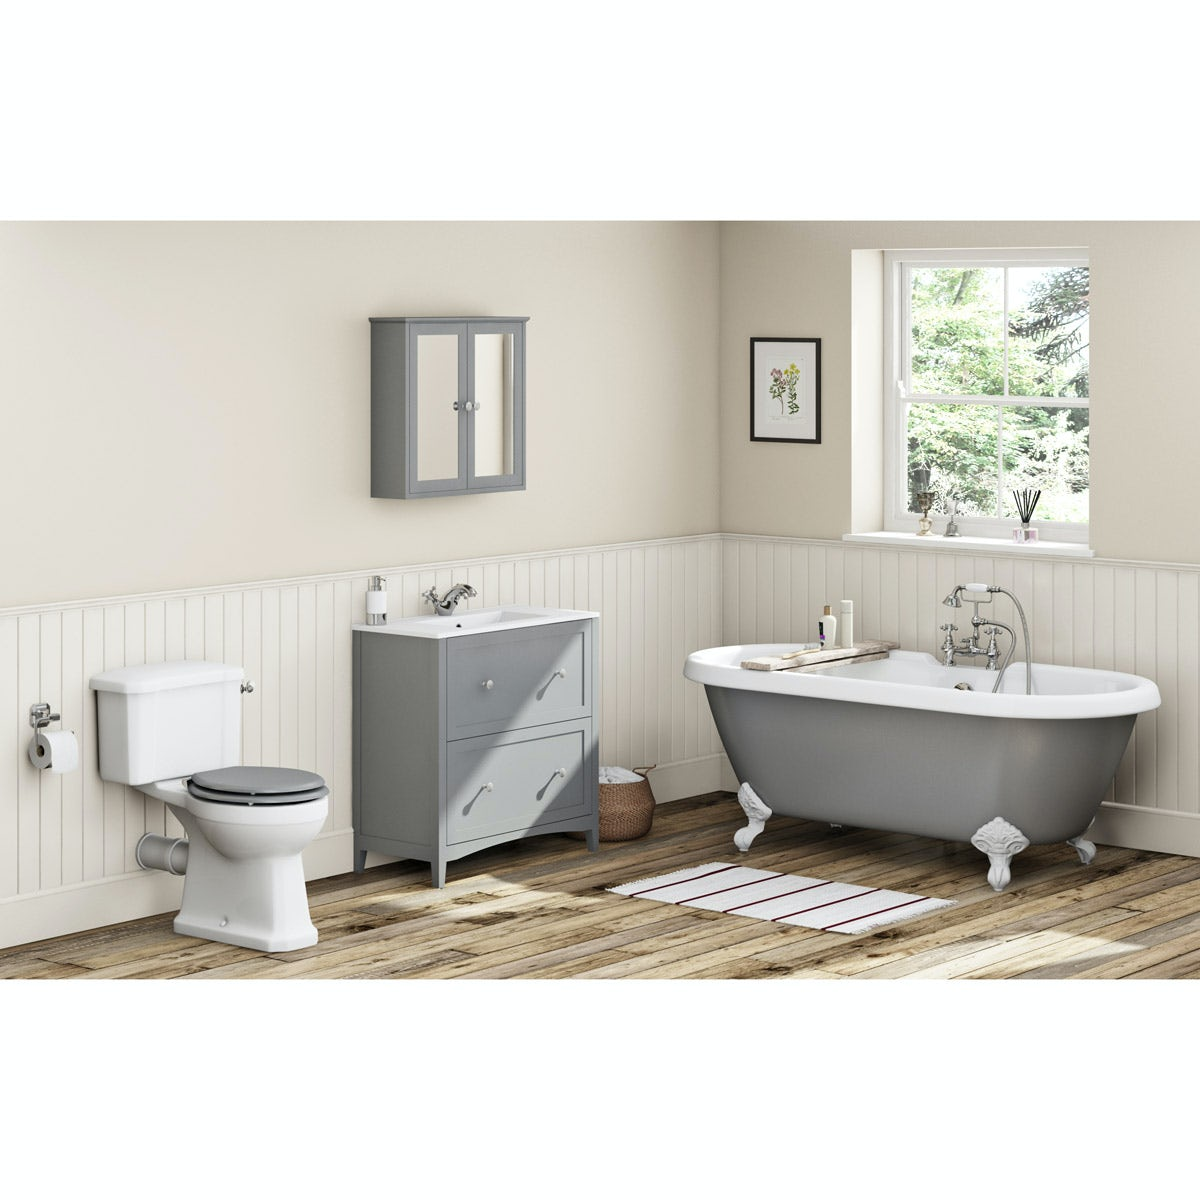 The Bath Co Camberley Grey Furniture Suite With